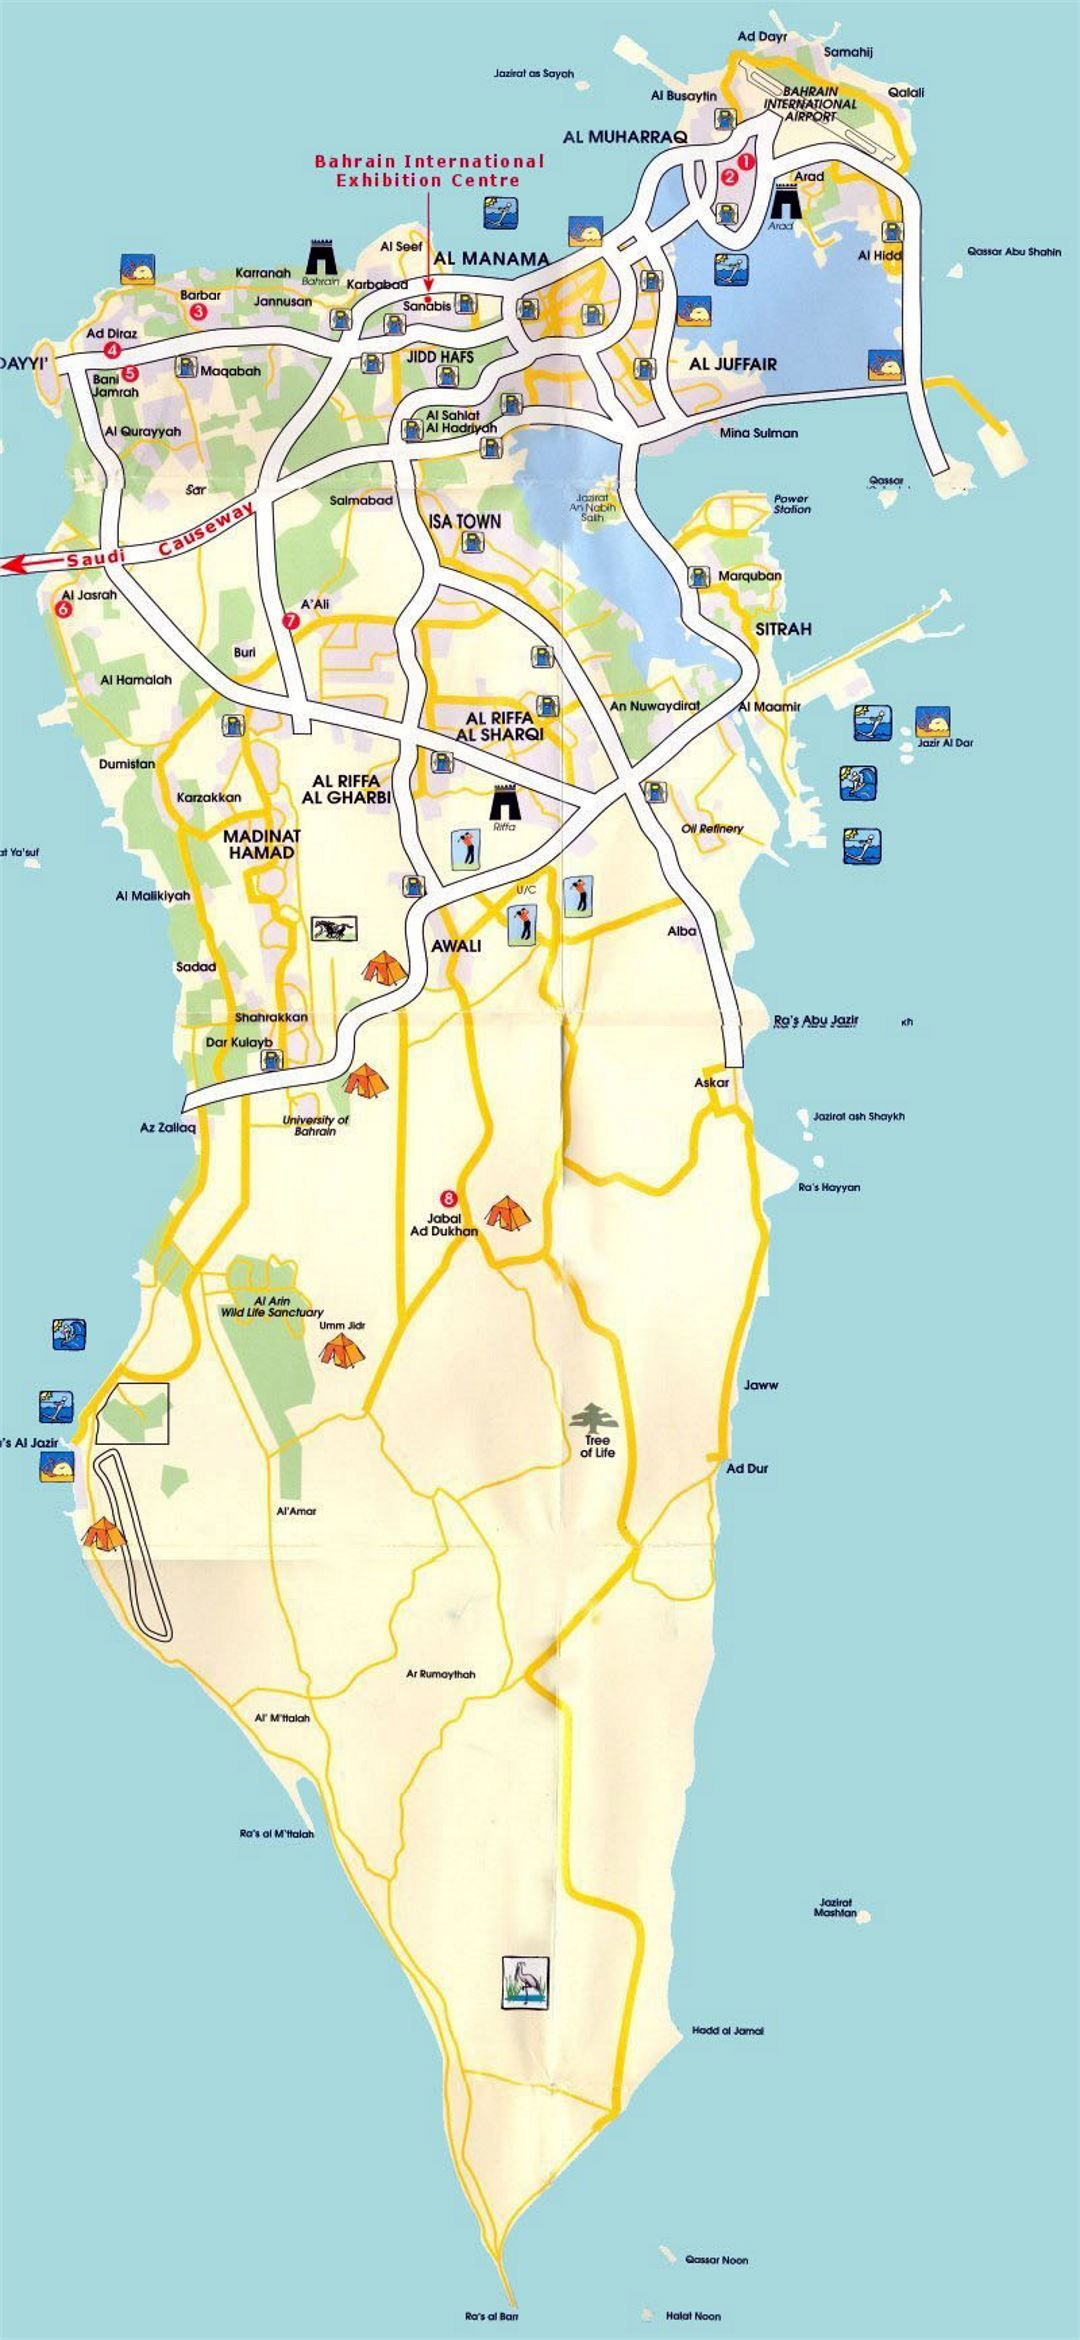 Detailed tourist map of Bahrain with roads